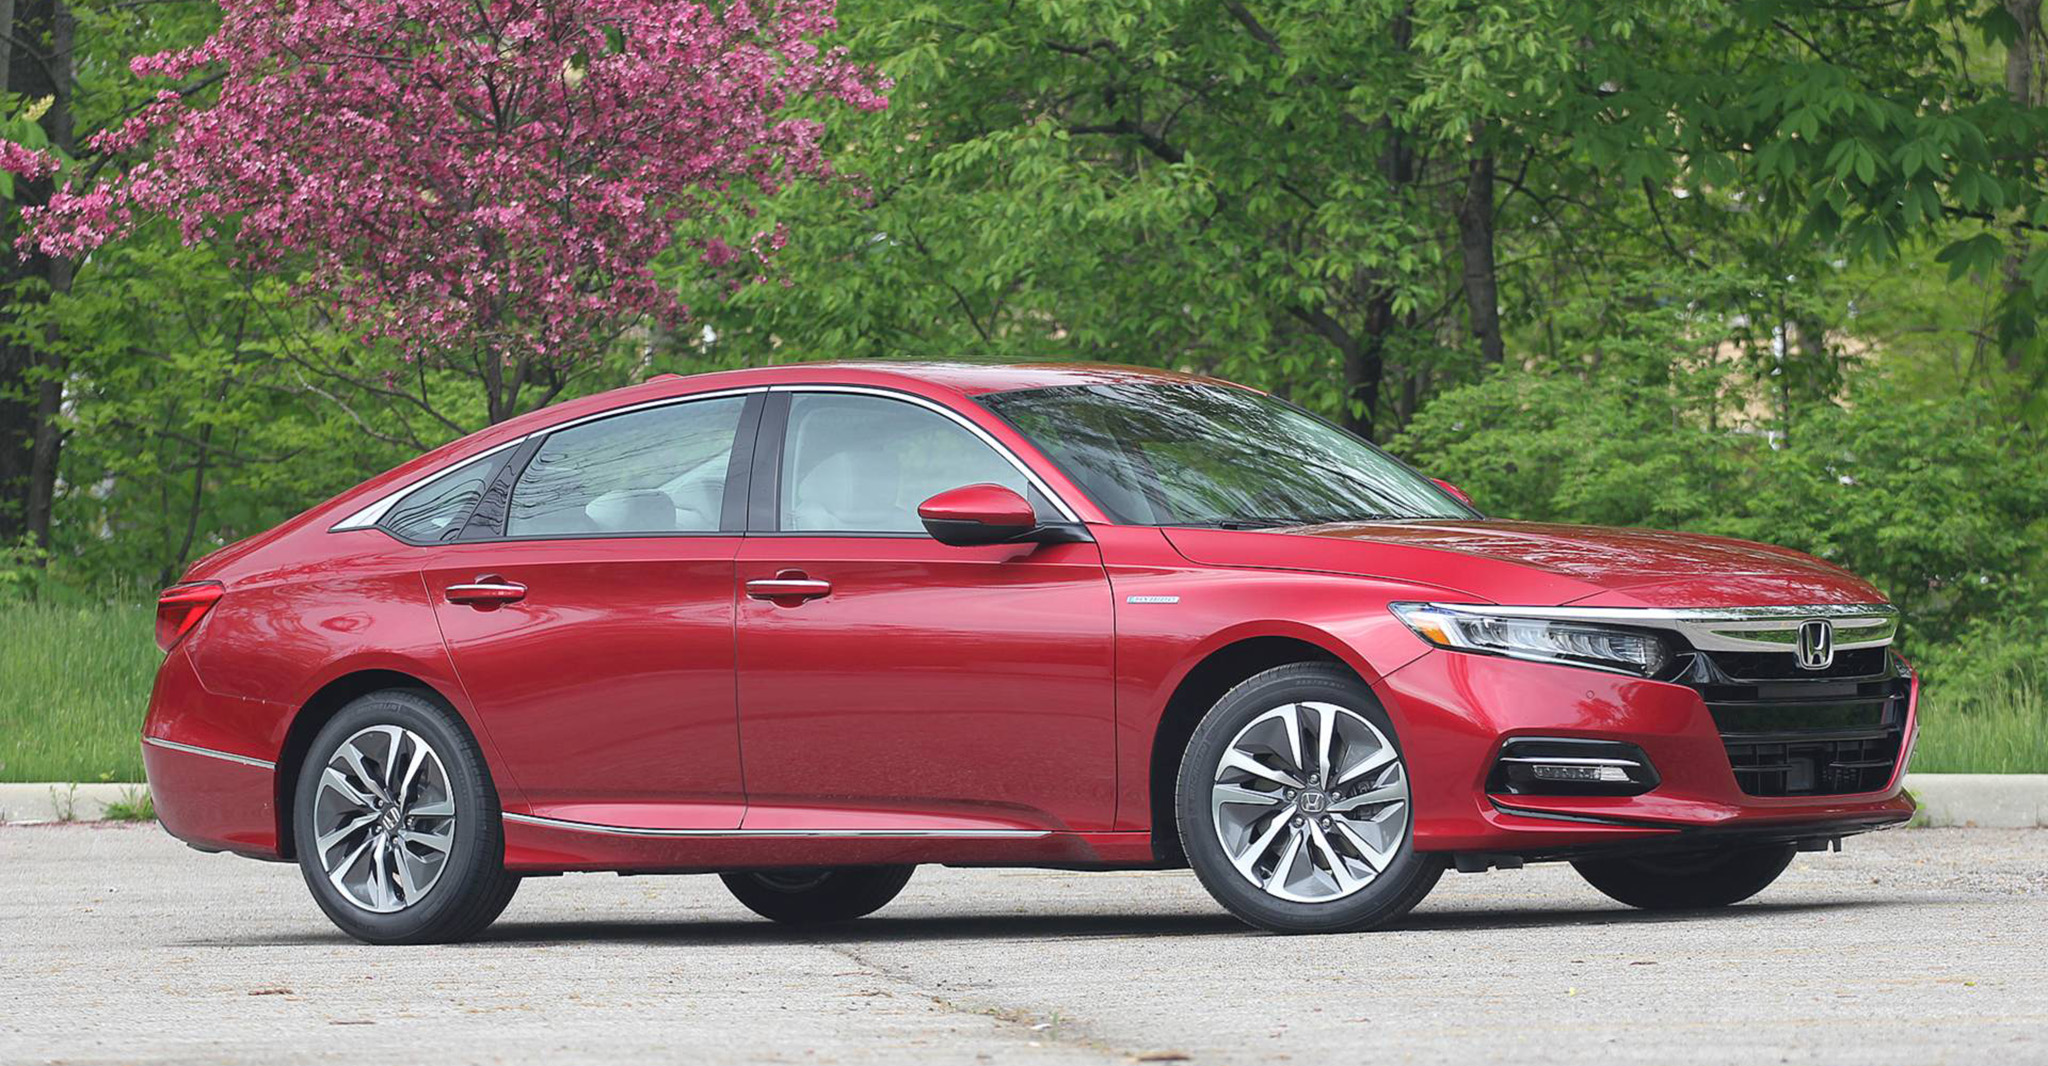 2018-honda-accord-hybrid-review-1.jpg